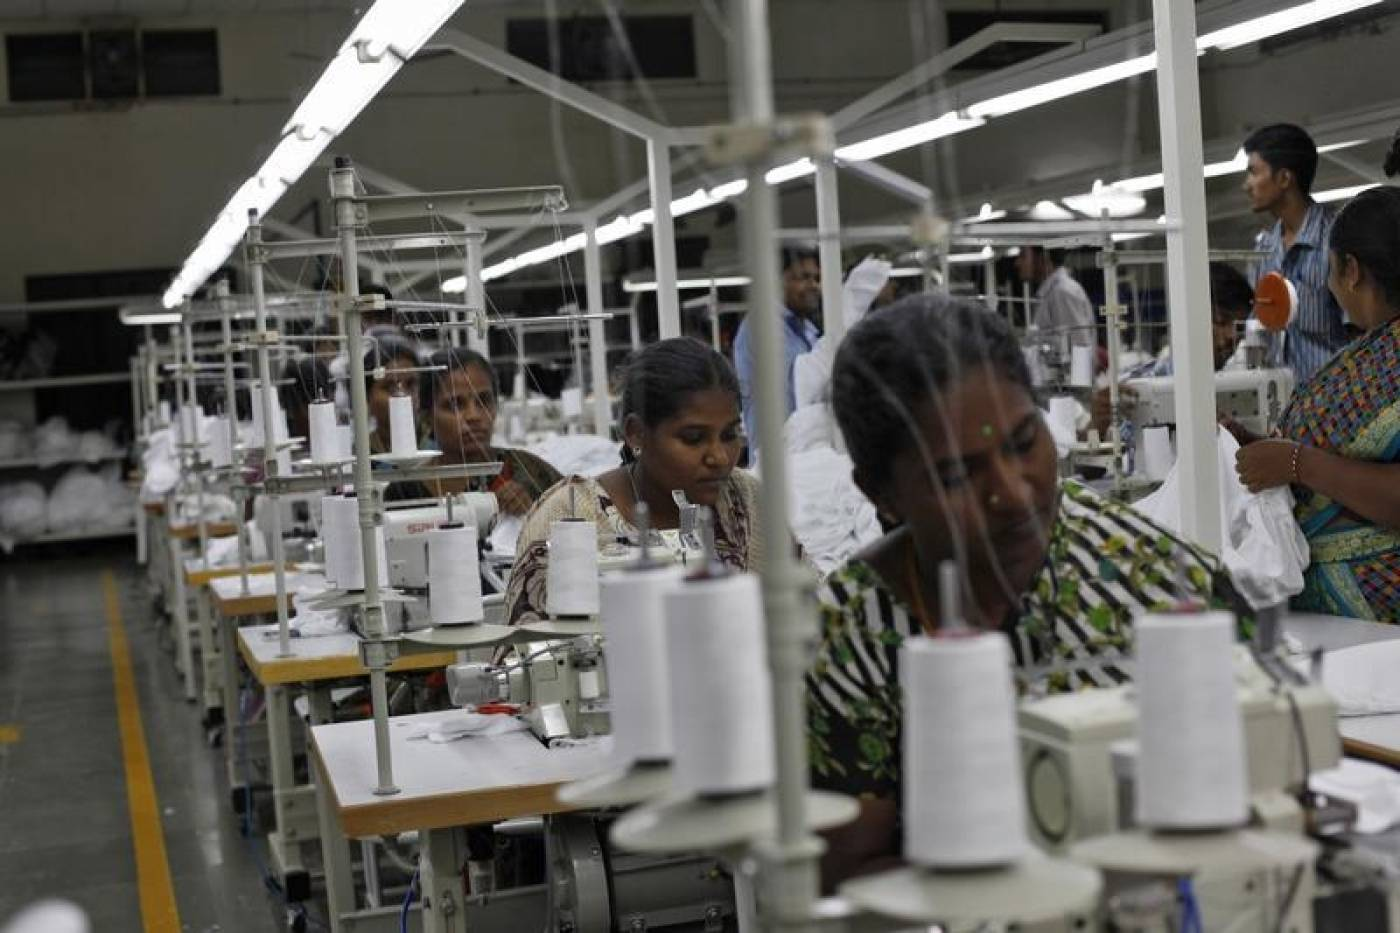 Representative image of garment industry workers in Bengaluru. Credit: Reuters